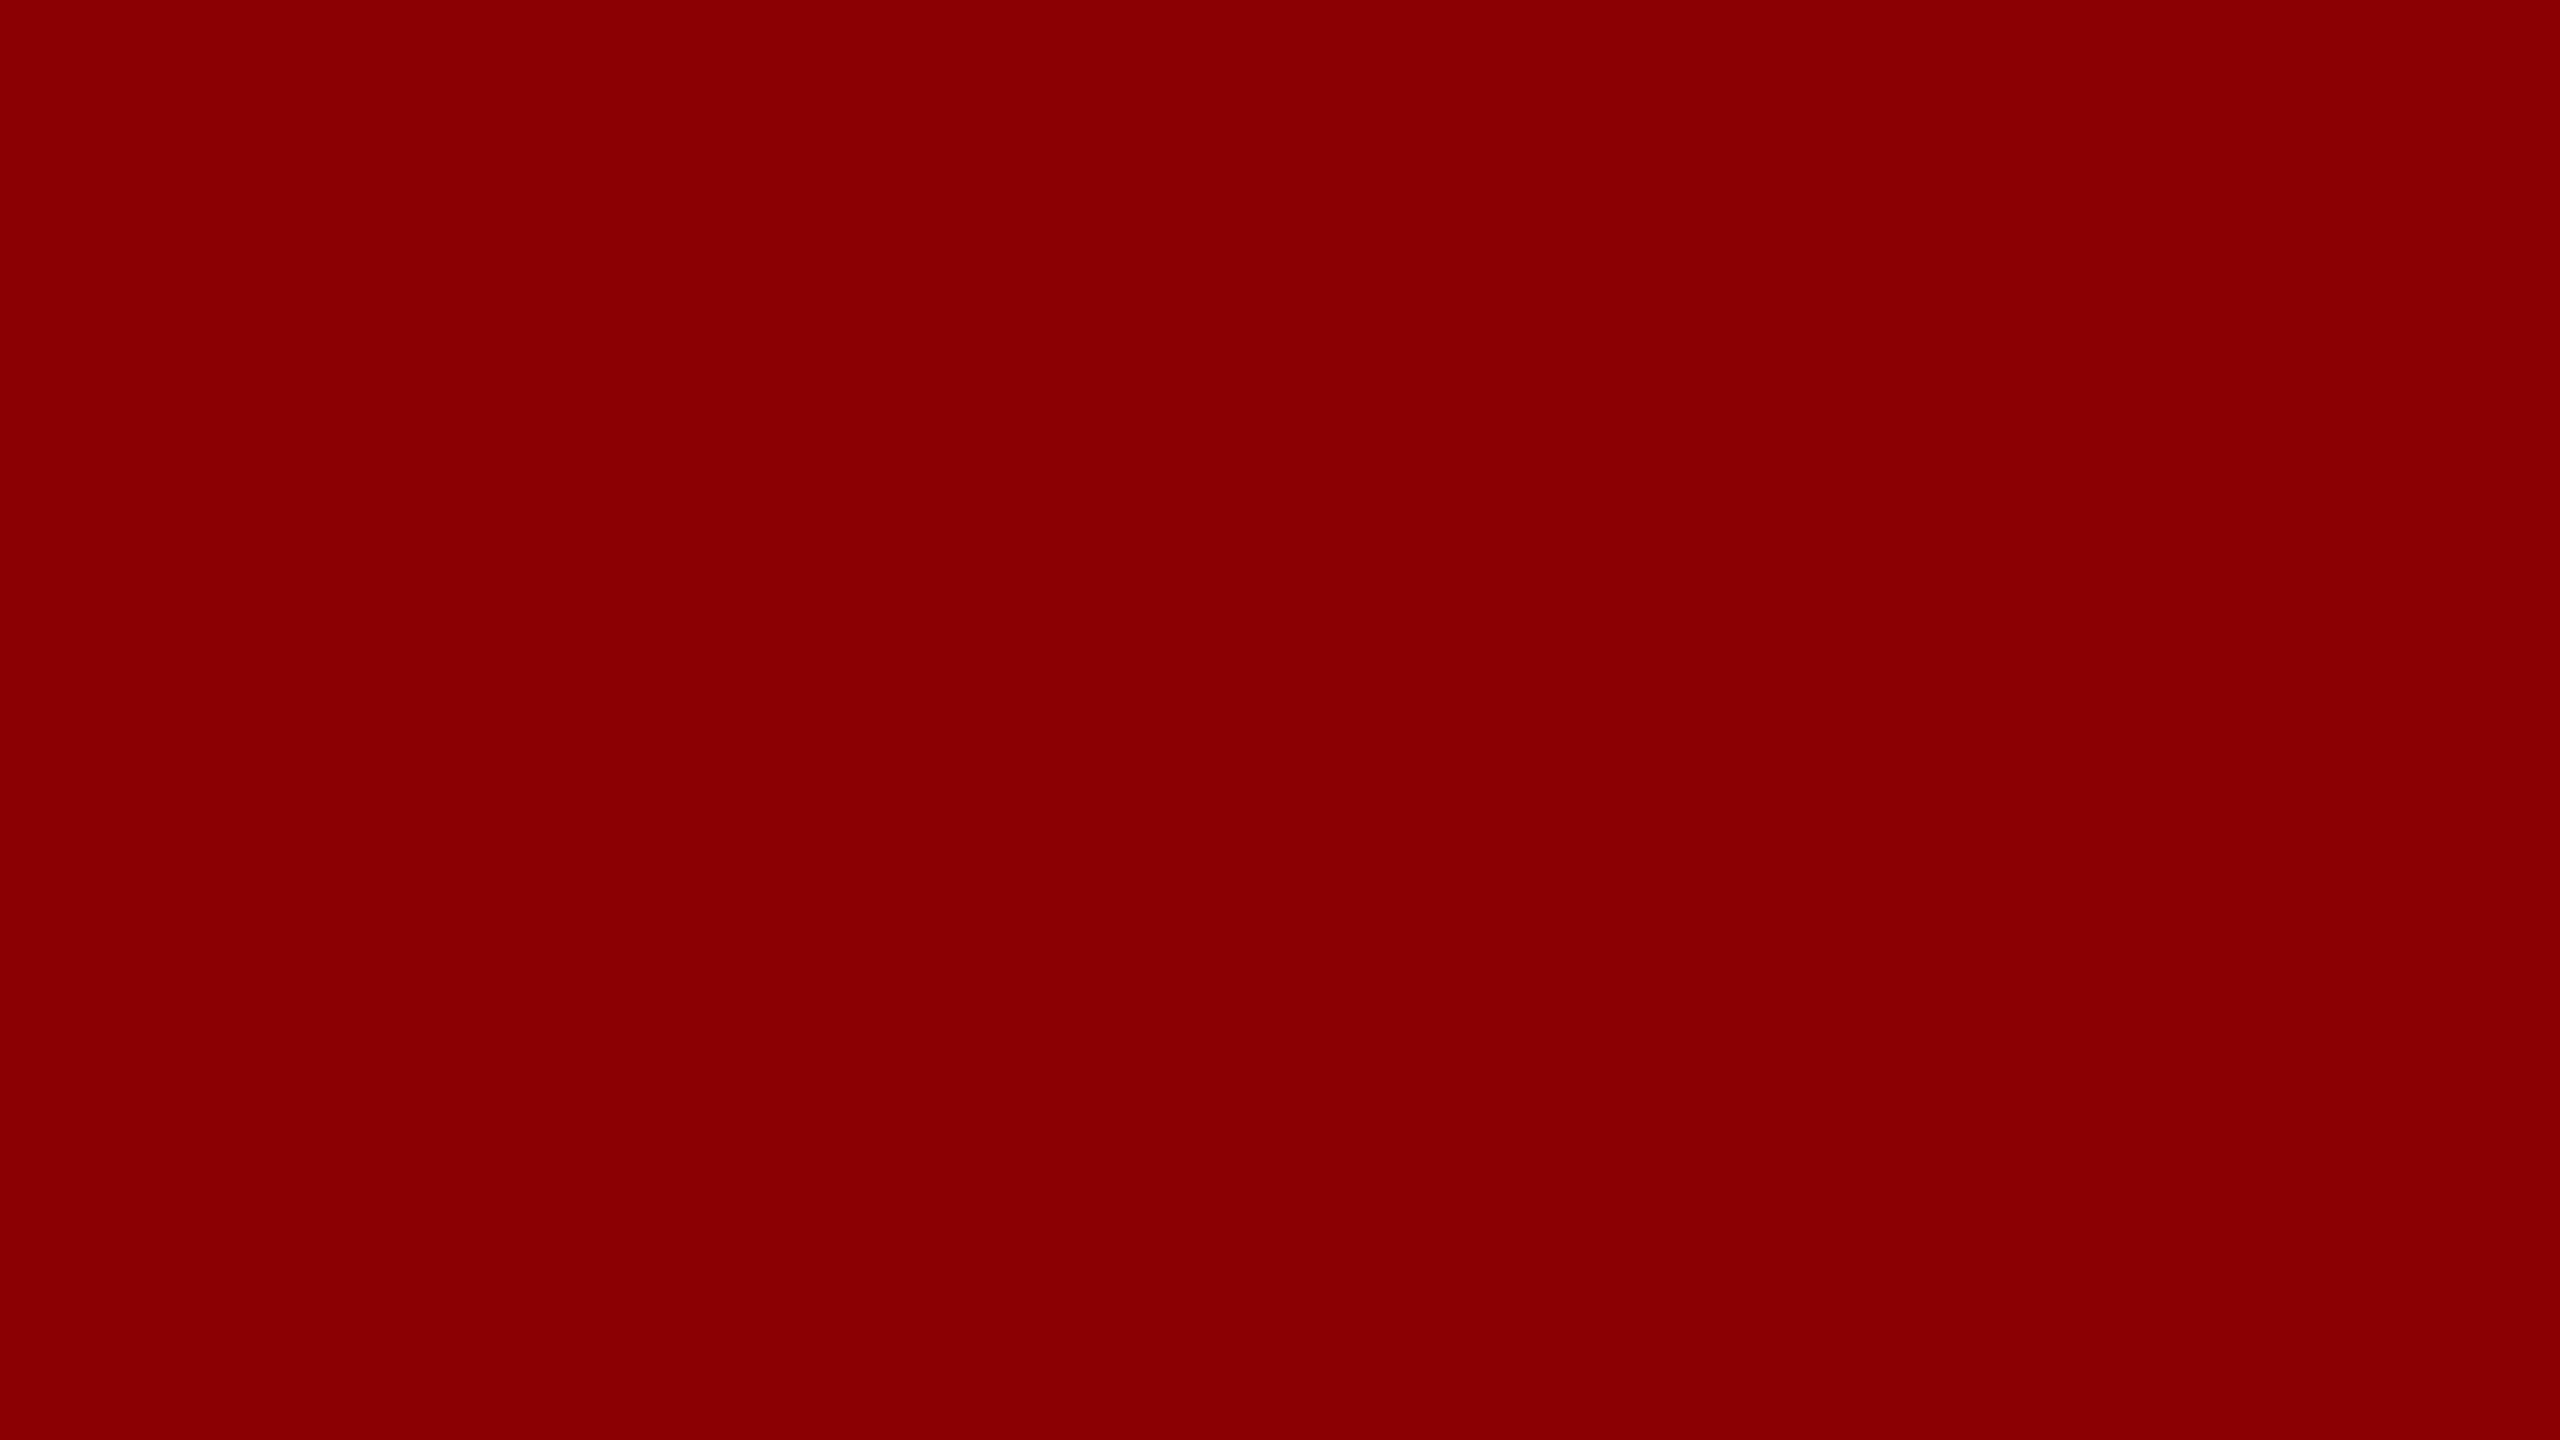 red color background hd - photo #10